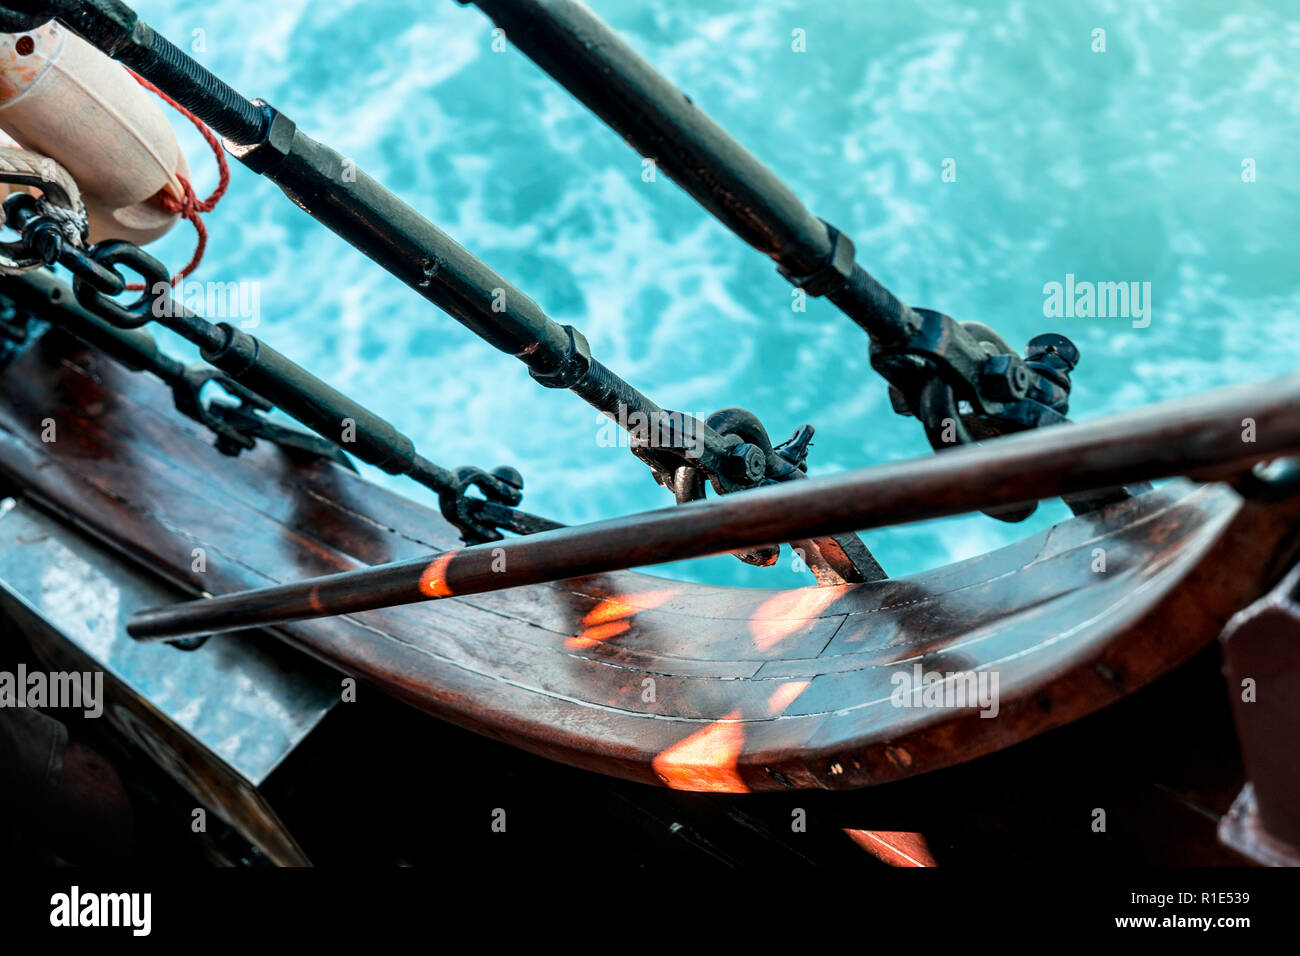 Dynamc Ship Detail with Water Background - Stock Image